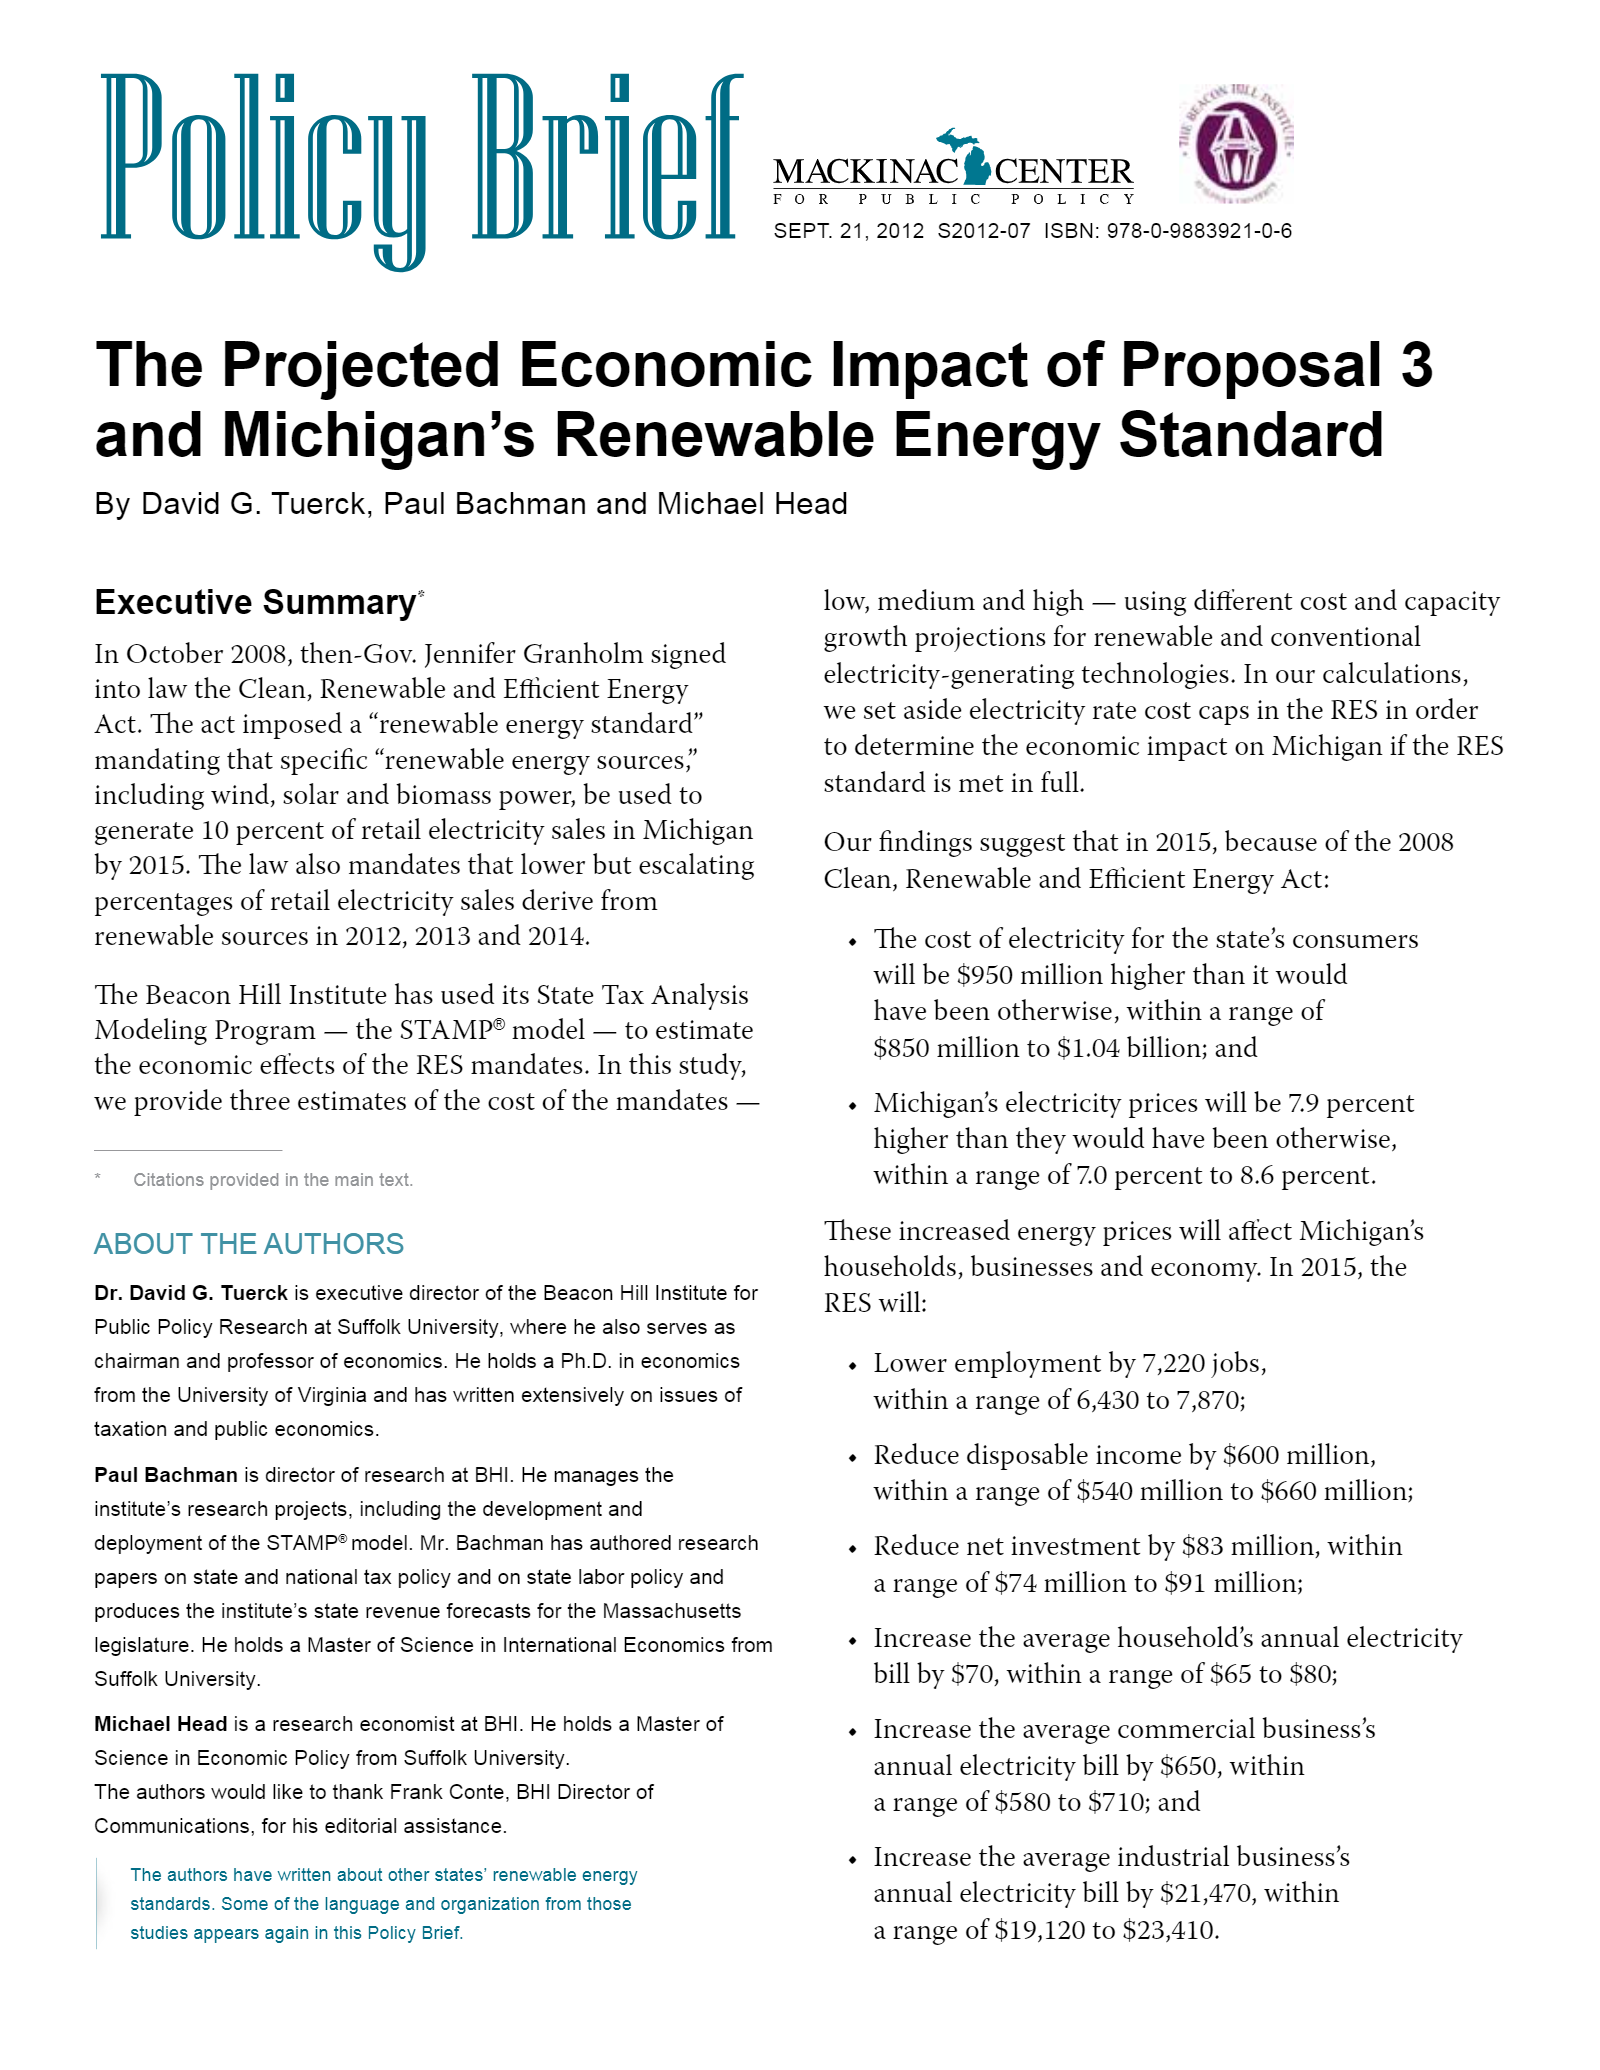 The Projected Economic Impact Of Proposal 3 And Michigan S